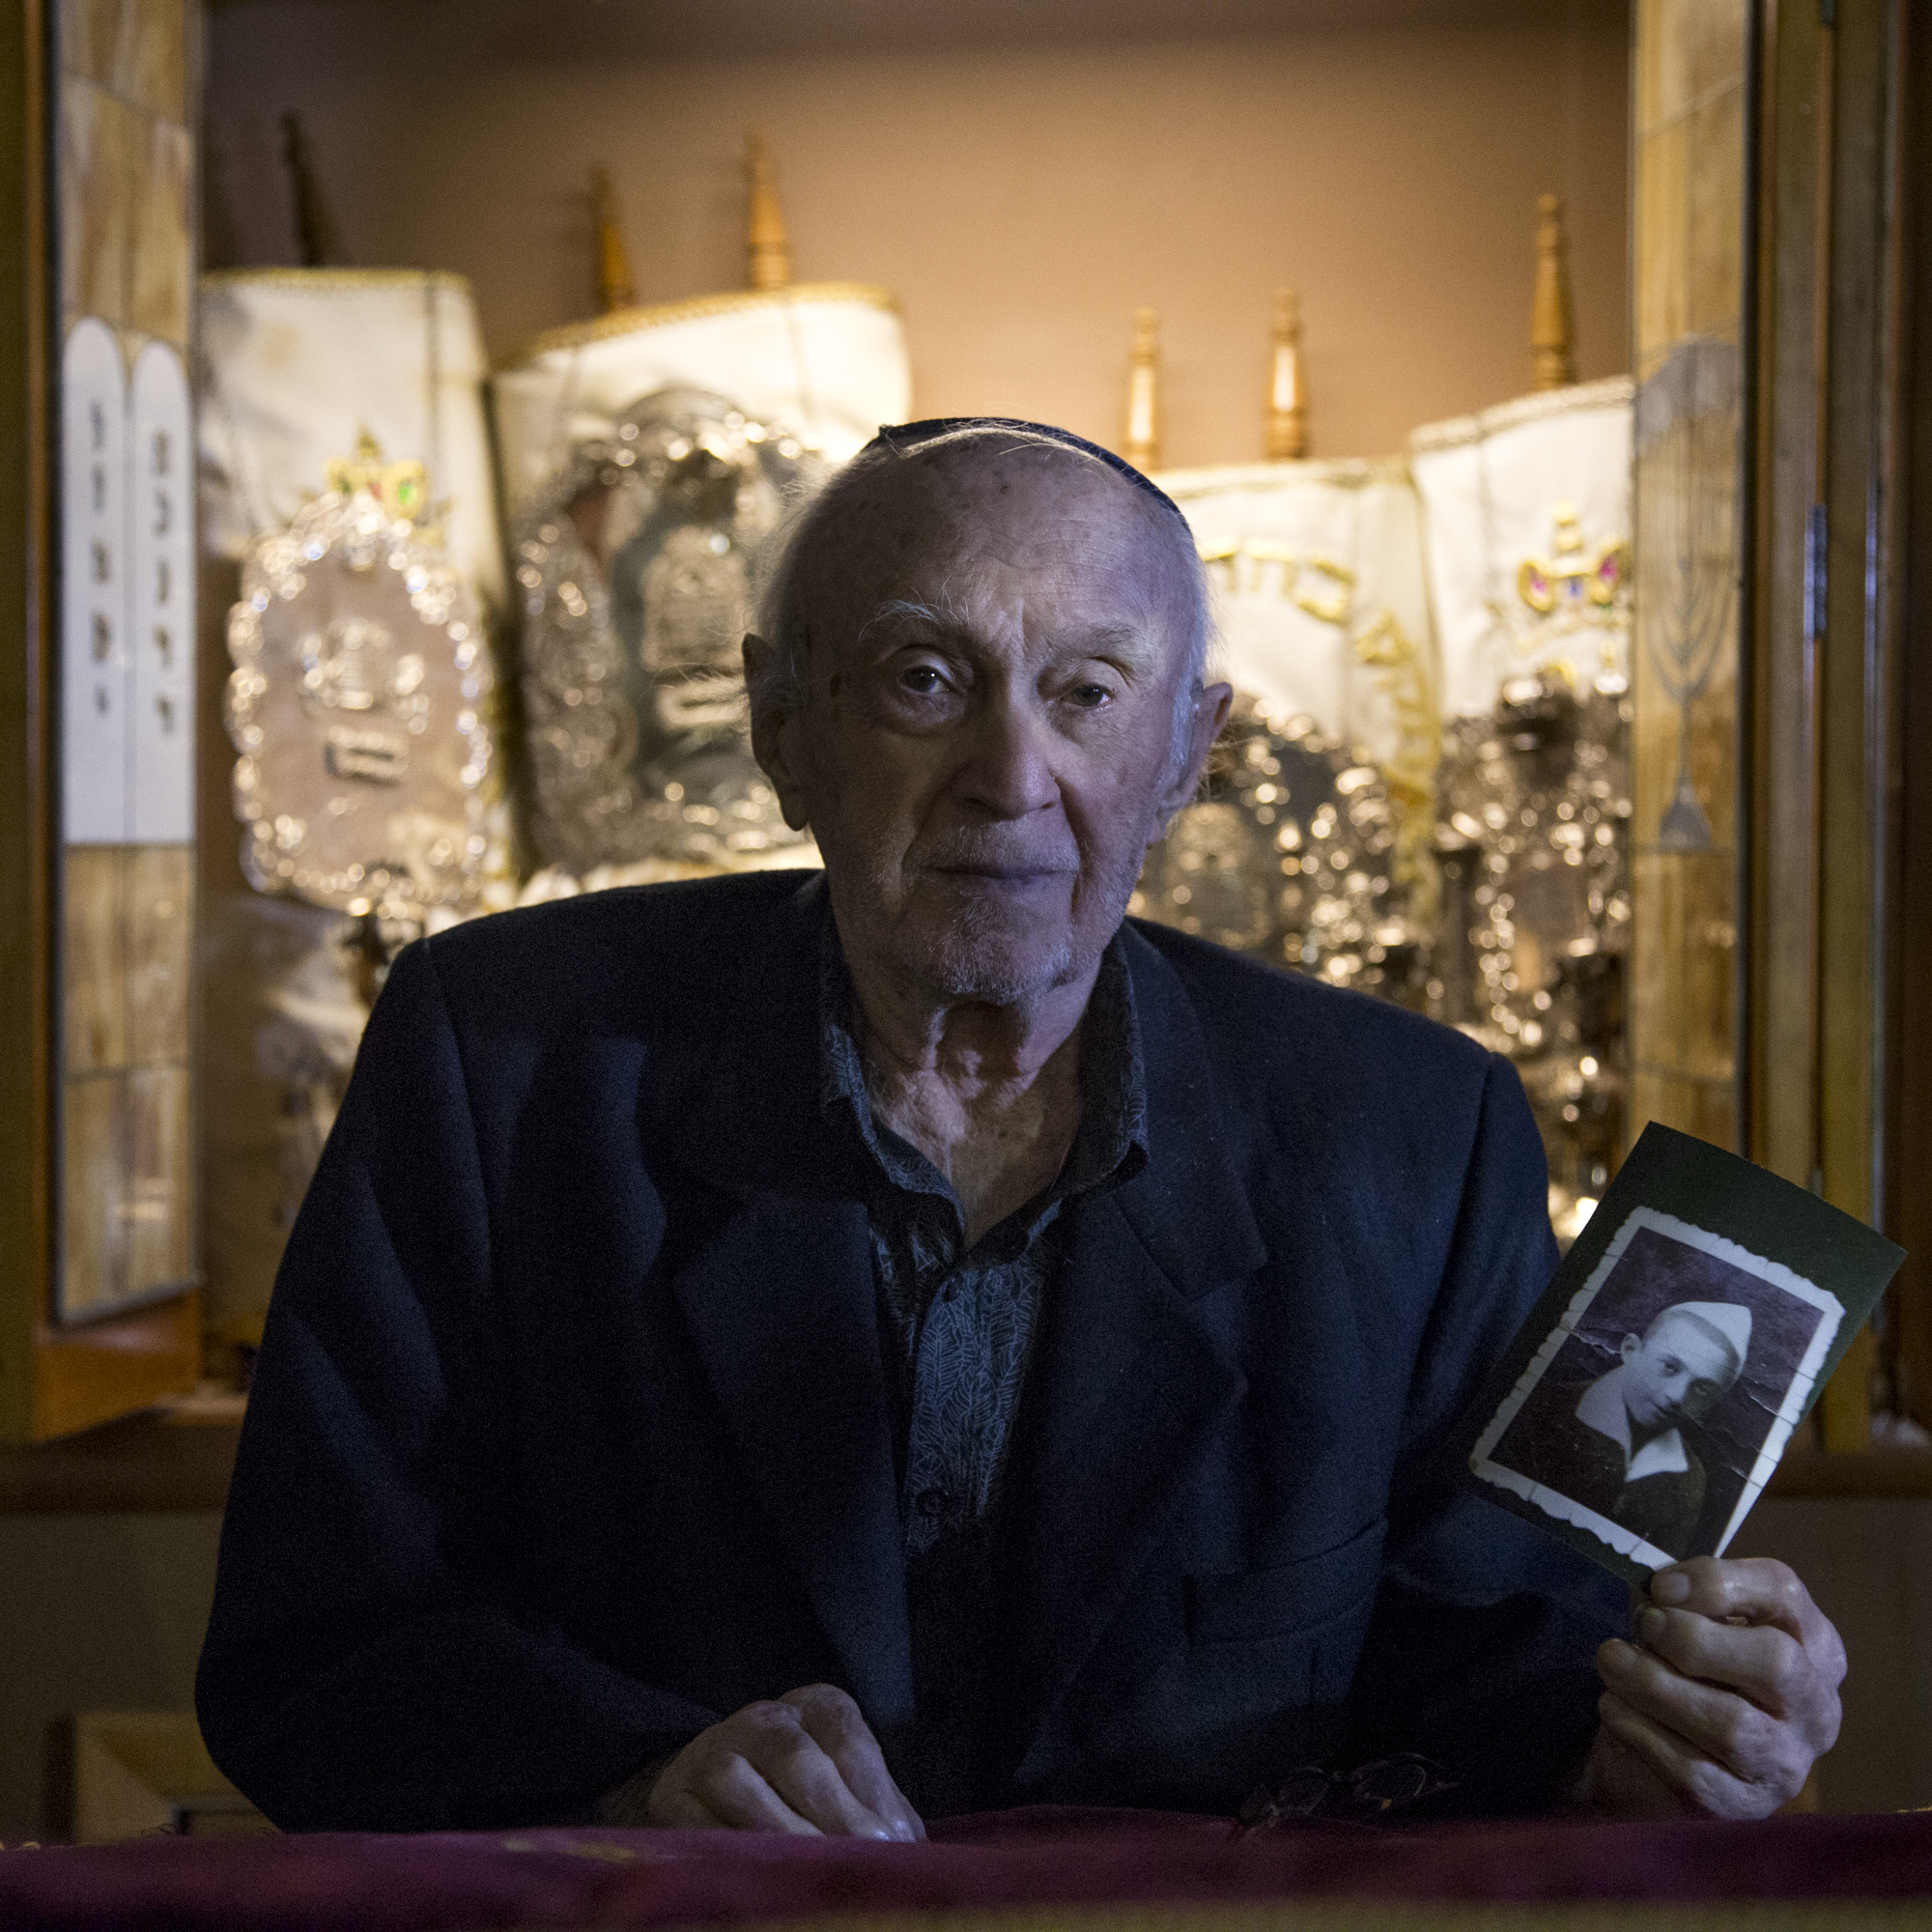 Holocaustsurvivor Chaim Ben-Aron holds a photo of himself just after liberation. He poses in front of the Torahs at his son's synagogue on Staten Island.